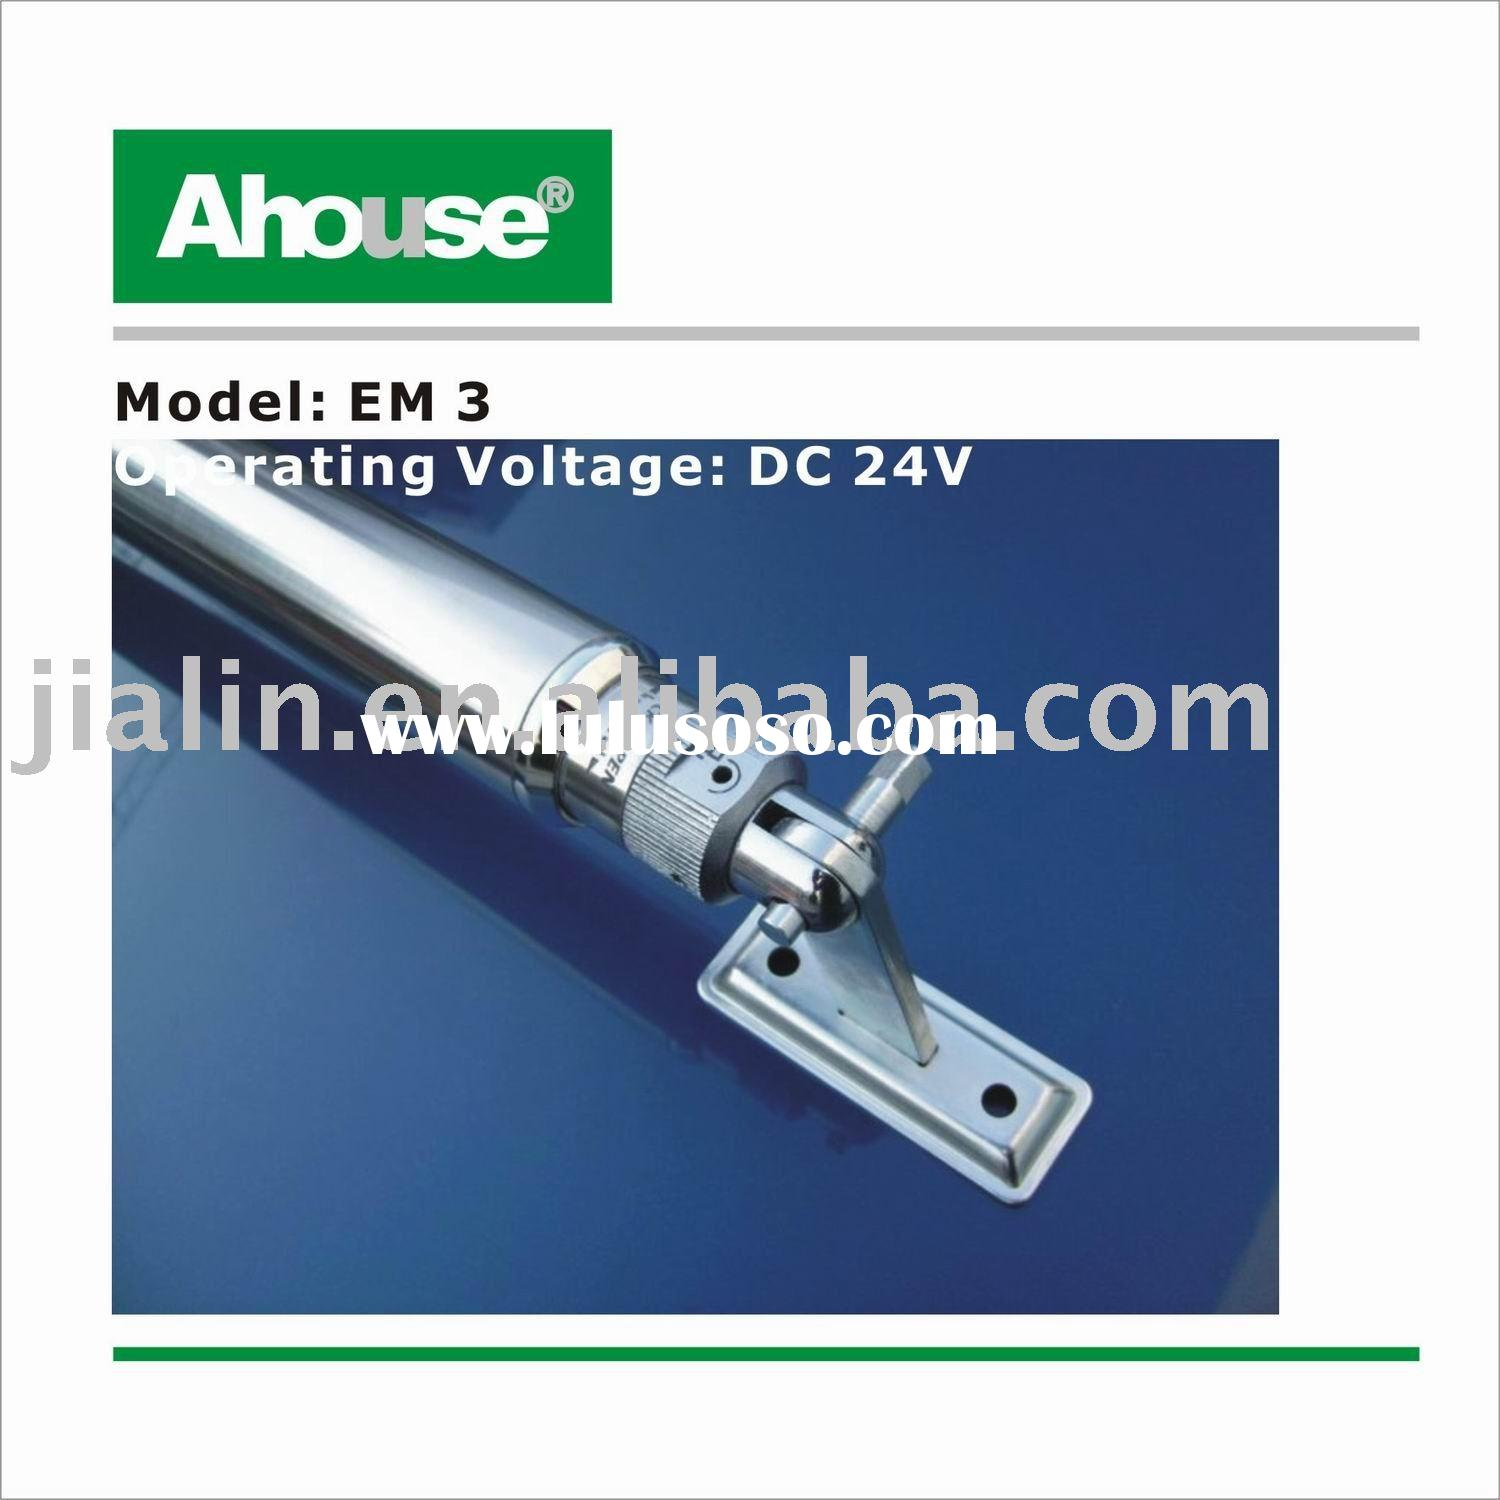 Automatic Gate Opener for Dual/Single Swing Gates